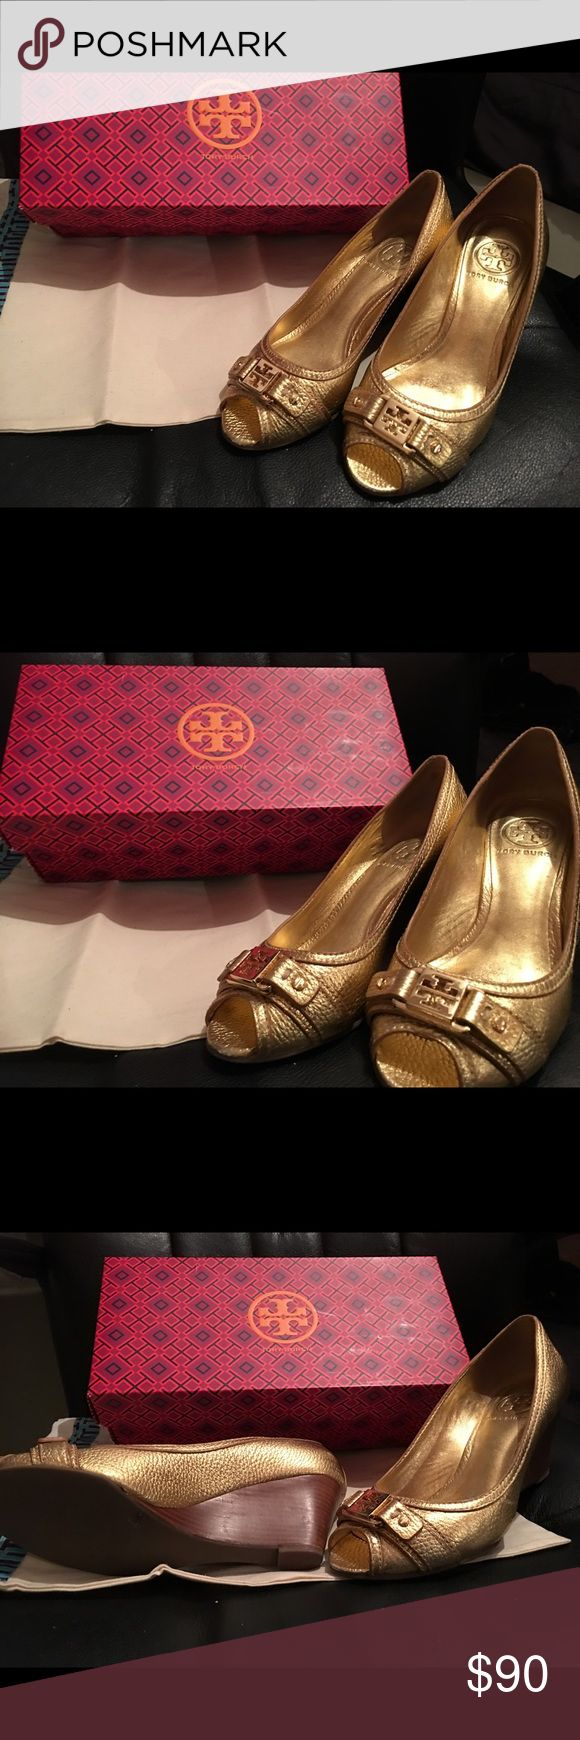 Tory burch metallic wedge Tory Burch gold wedge size 7 Tory Burch Shoes Wedges